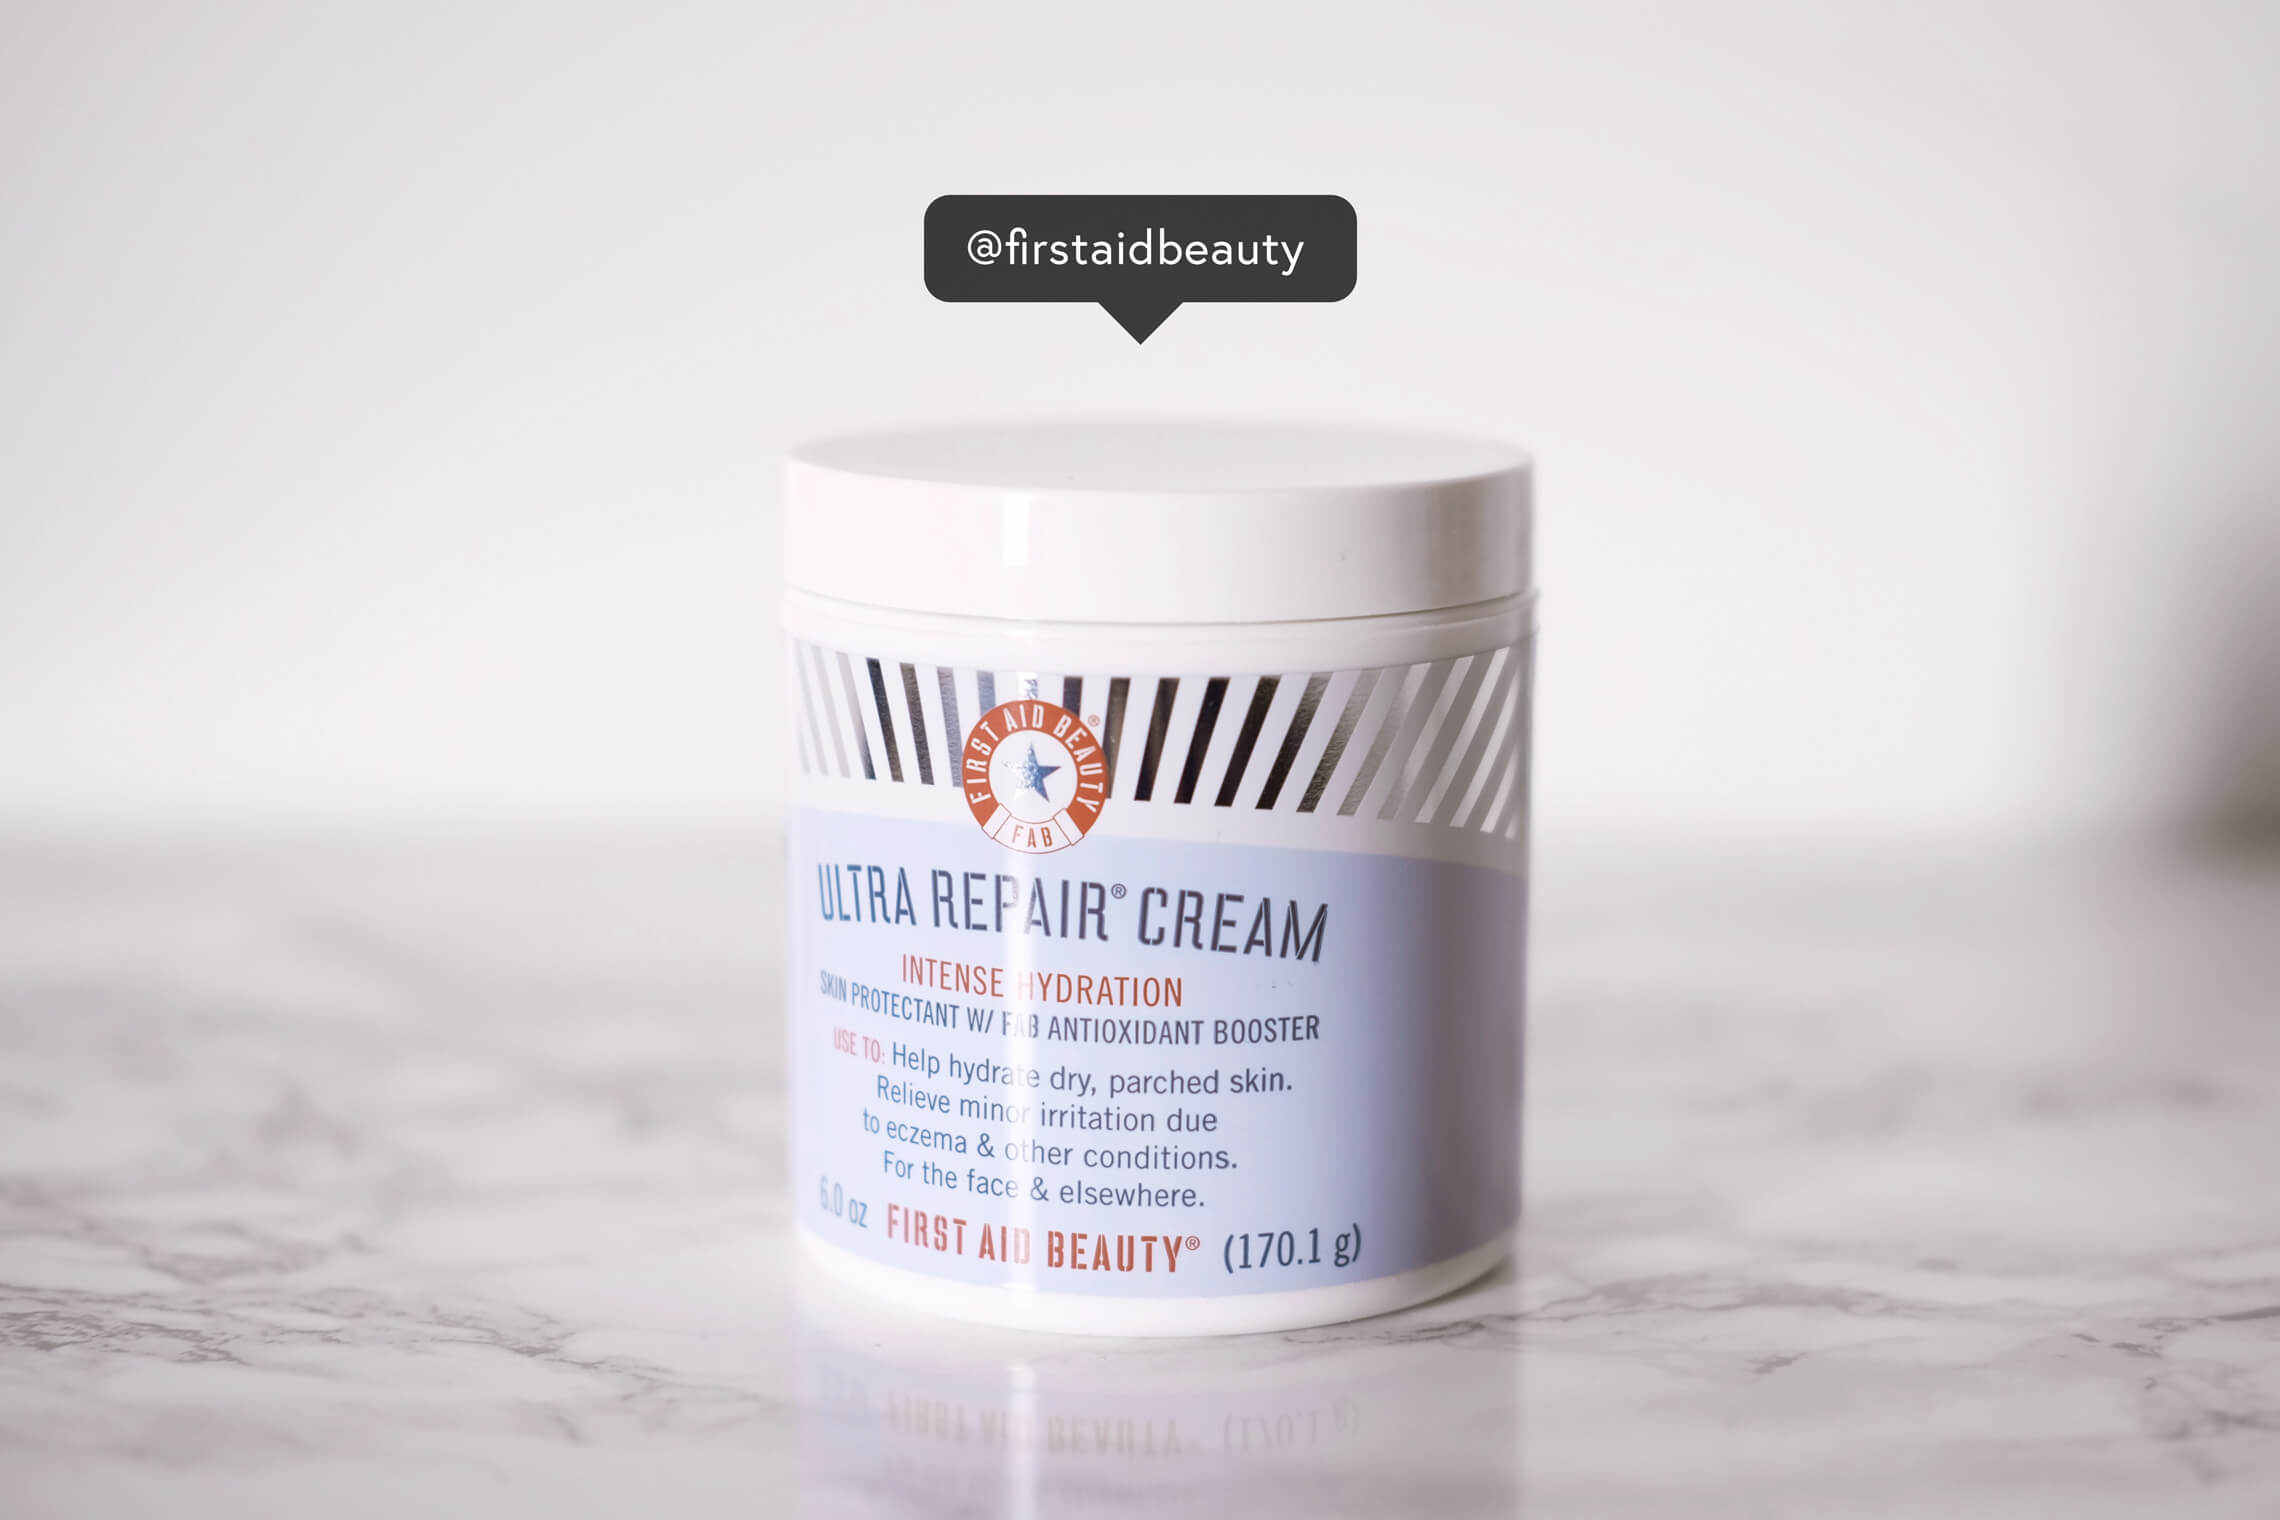 keiko lynn best skin care products 2018 first aid beauty ultra repair cream